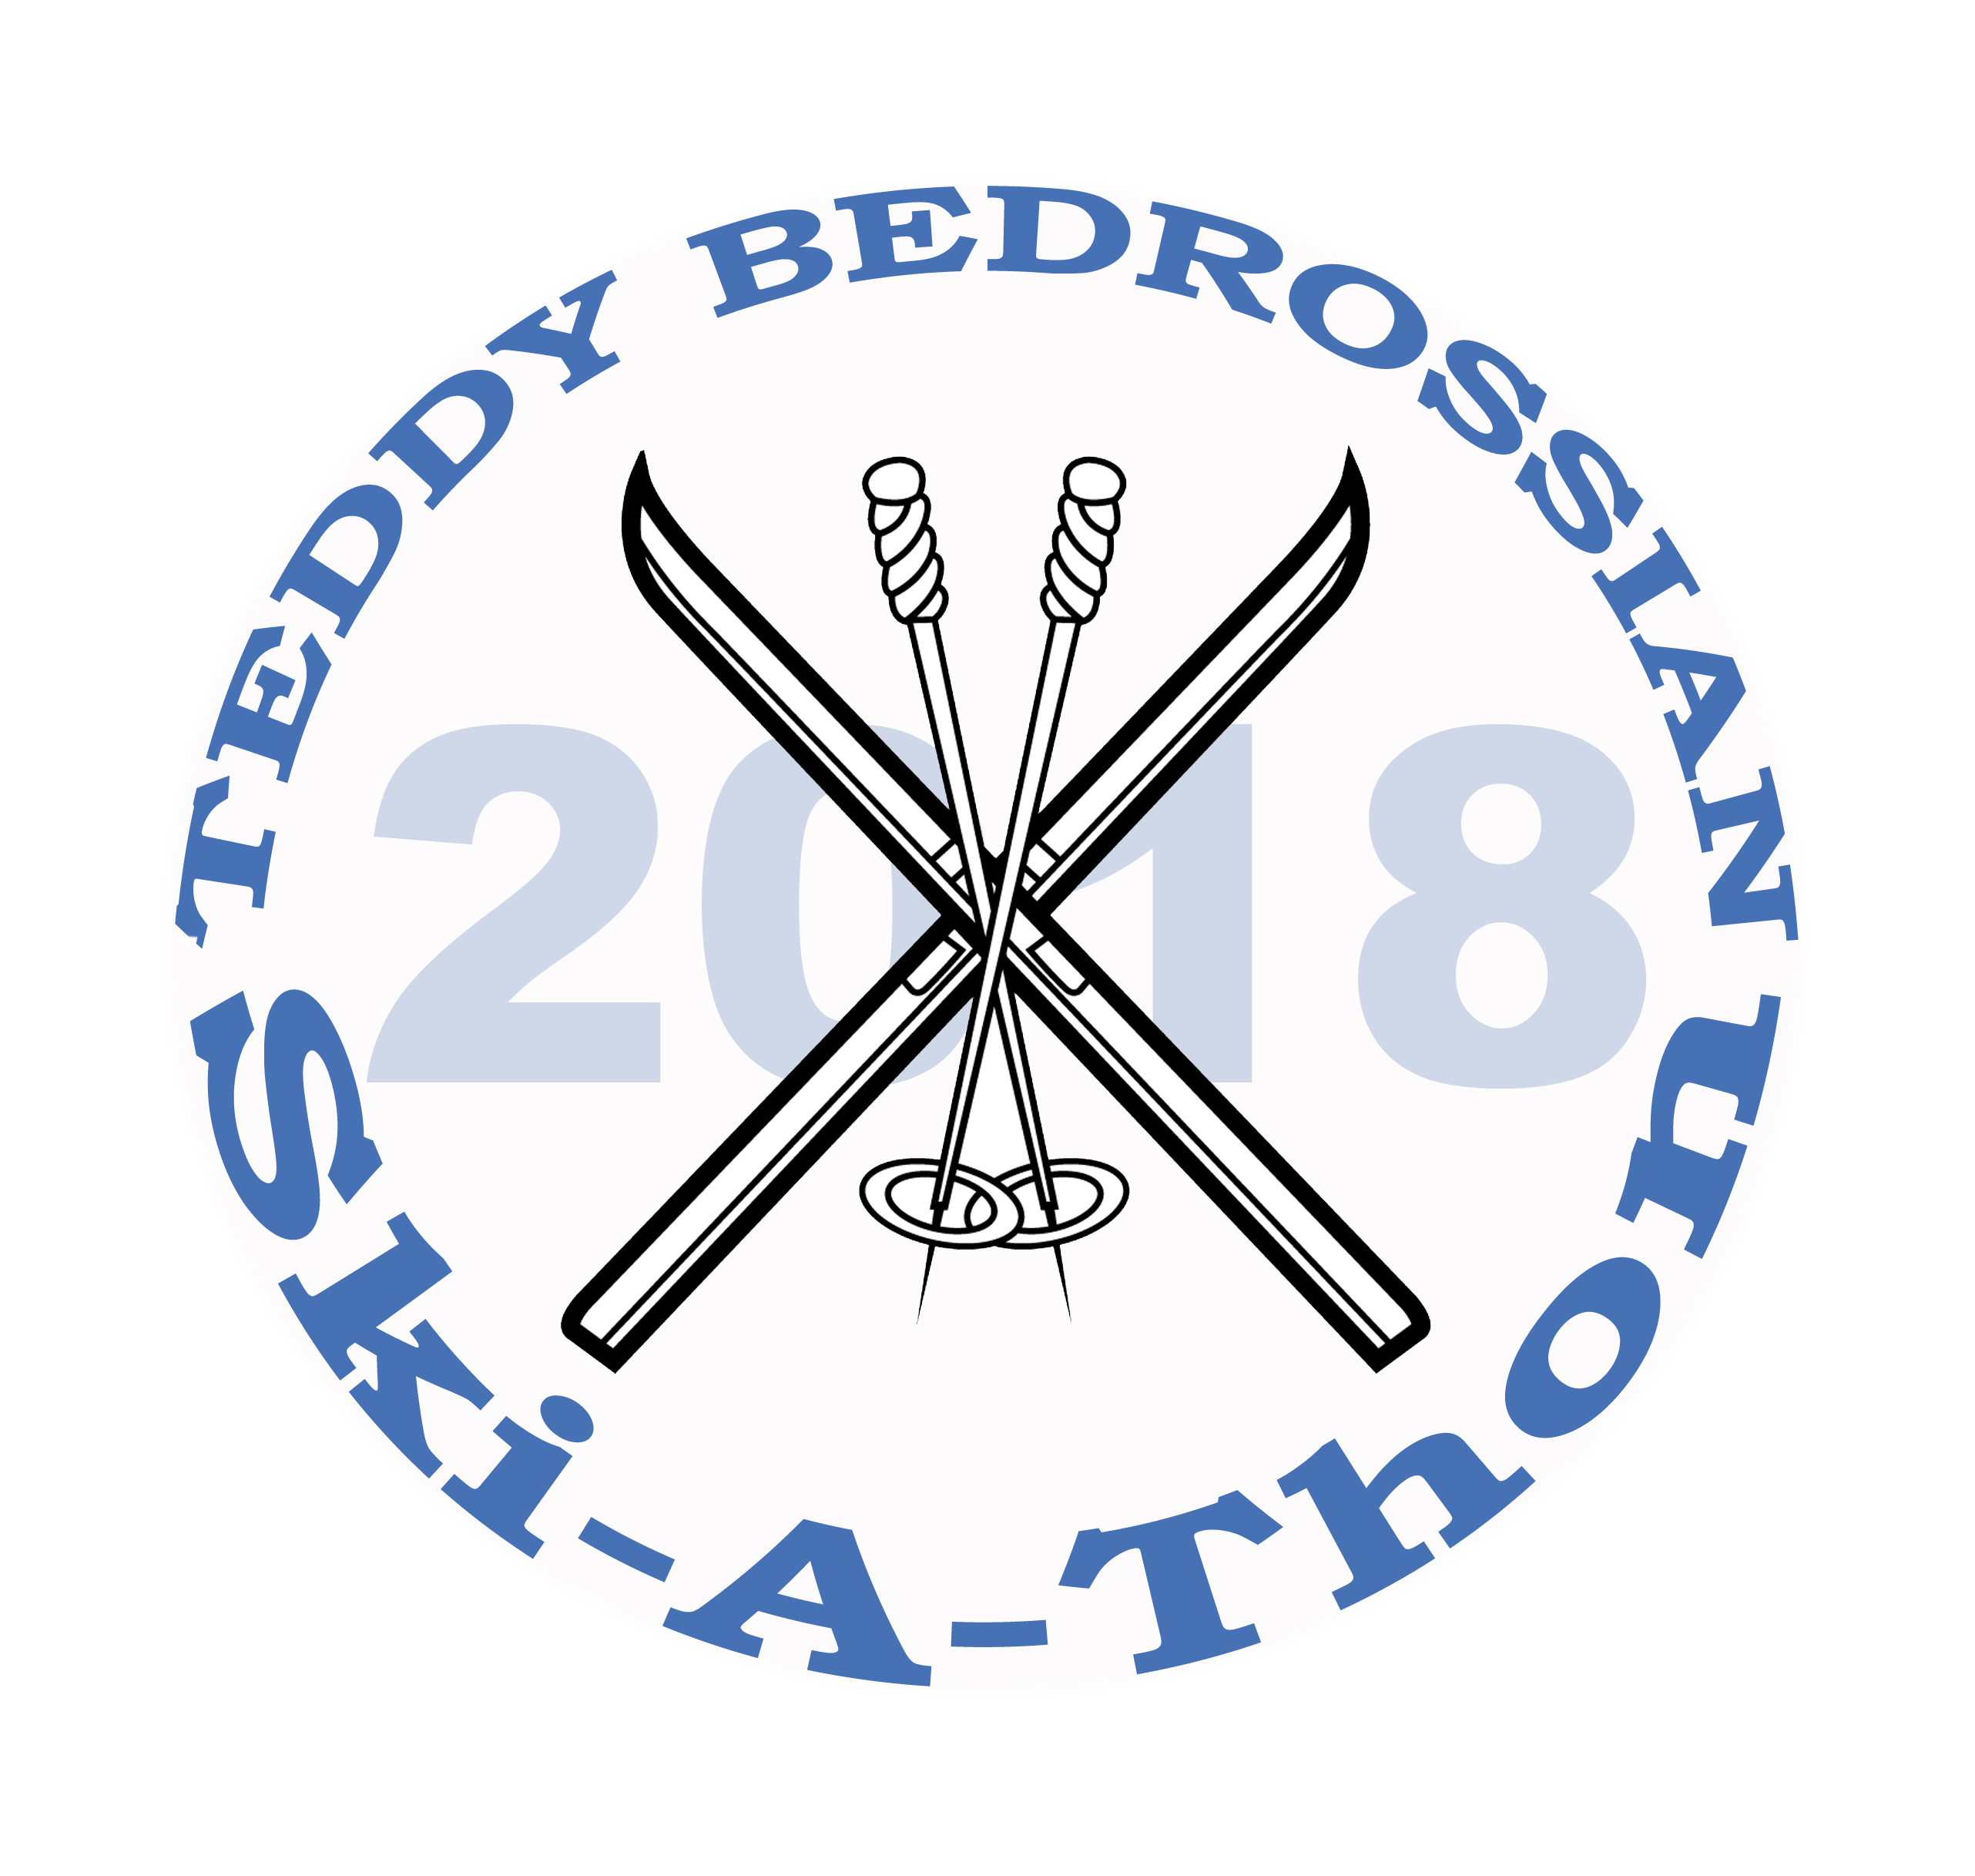 8TH ANNUAL TEDDY BEDROSSIAN SKI-A-THON: March 11, 2018